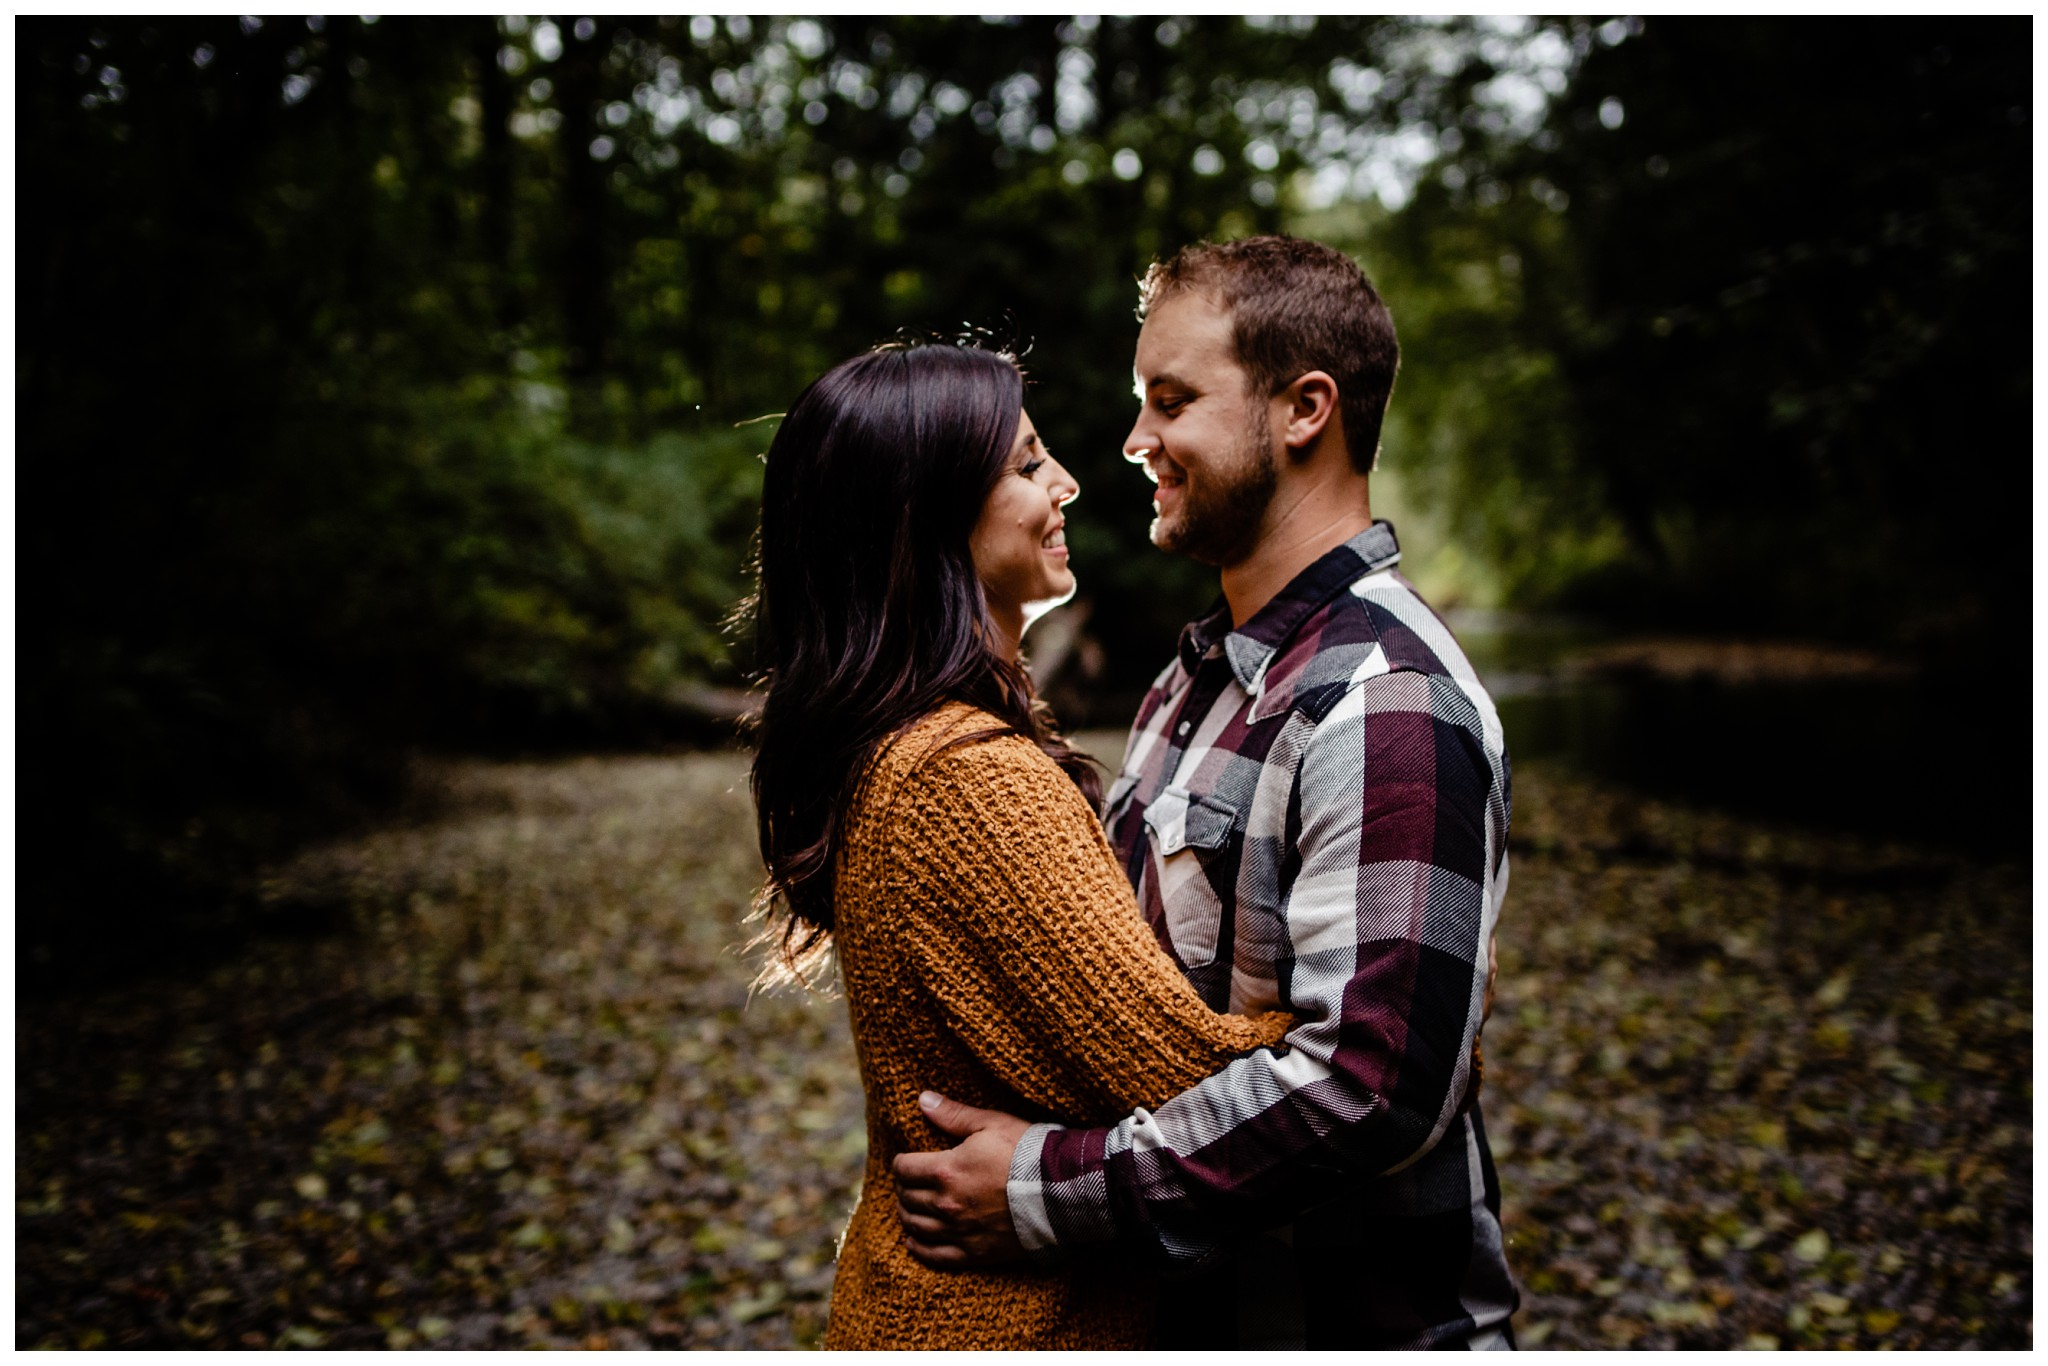 Williams Park Aldergrove Engagement Photographer Moody Fall Couple River Water Romantic Pose Yellow Leaves White Dress Dark_0035.jpg